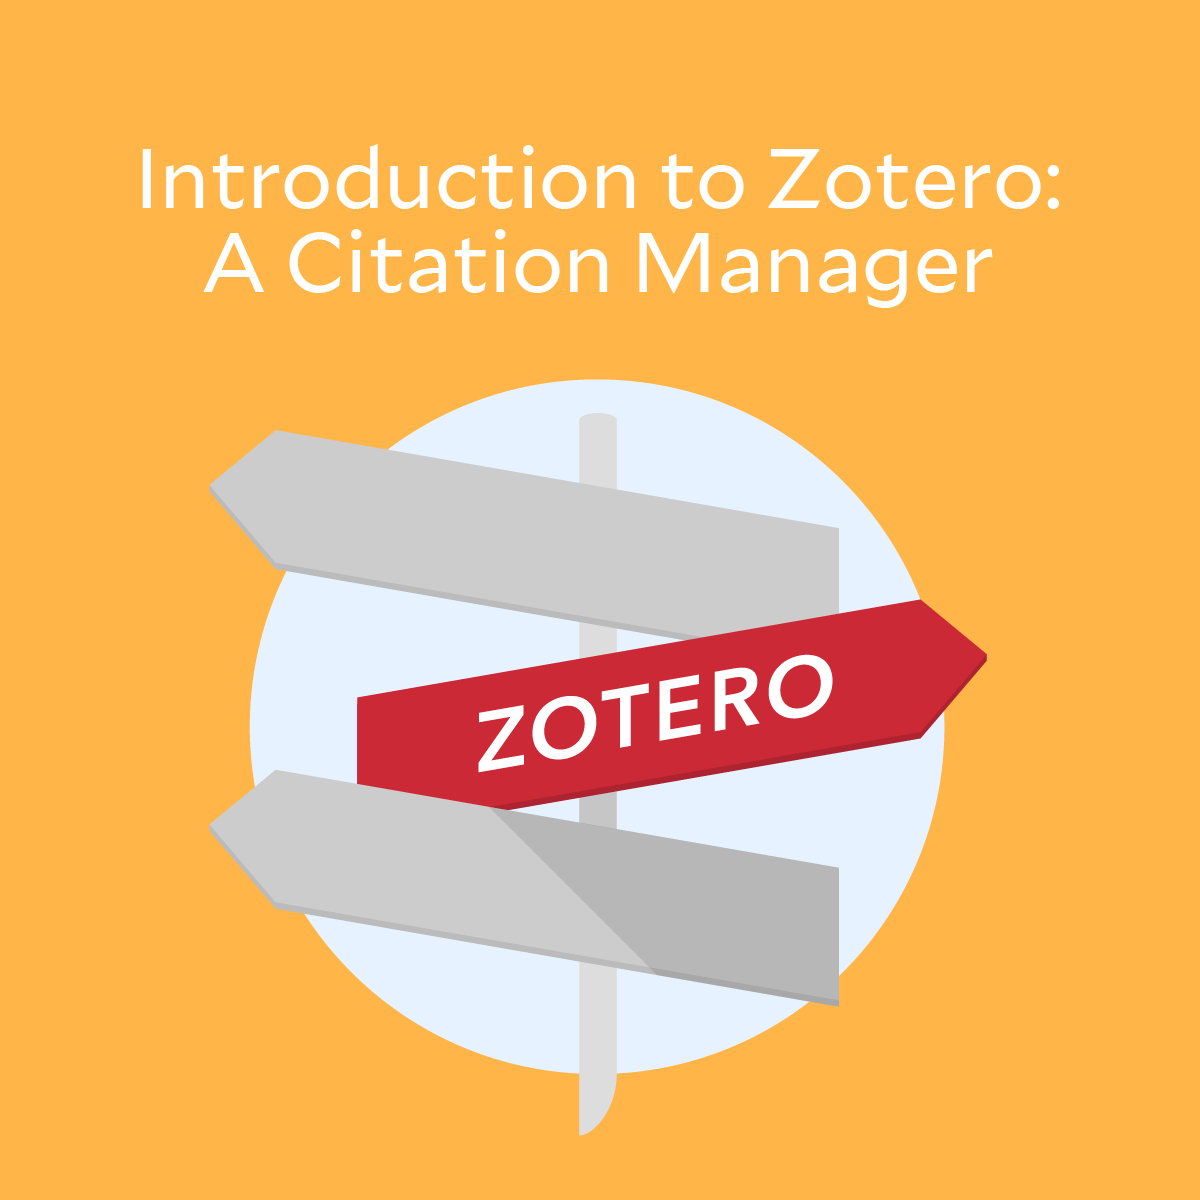 Introduction to Zotero: A Citation Manager